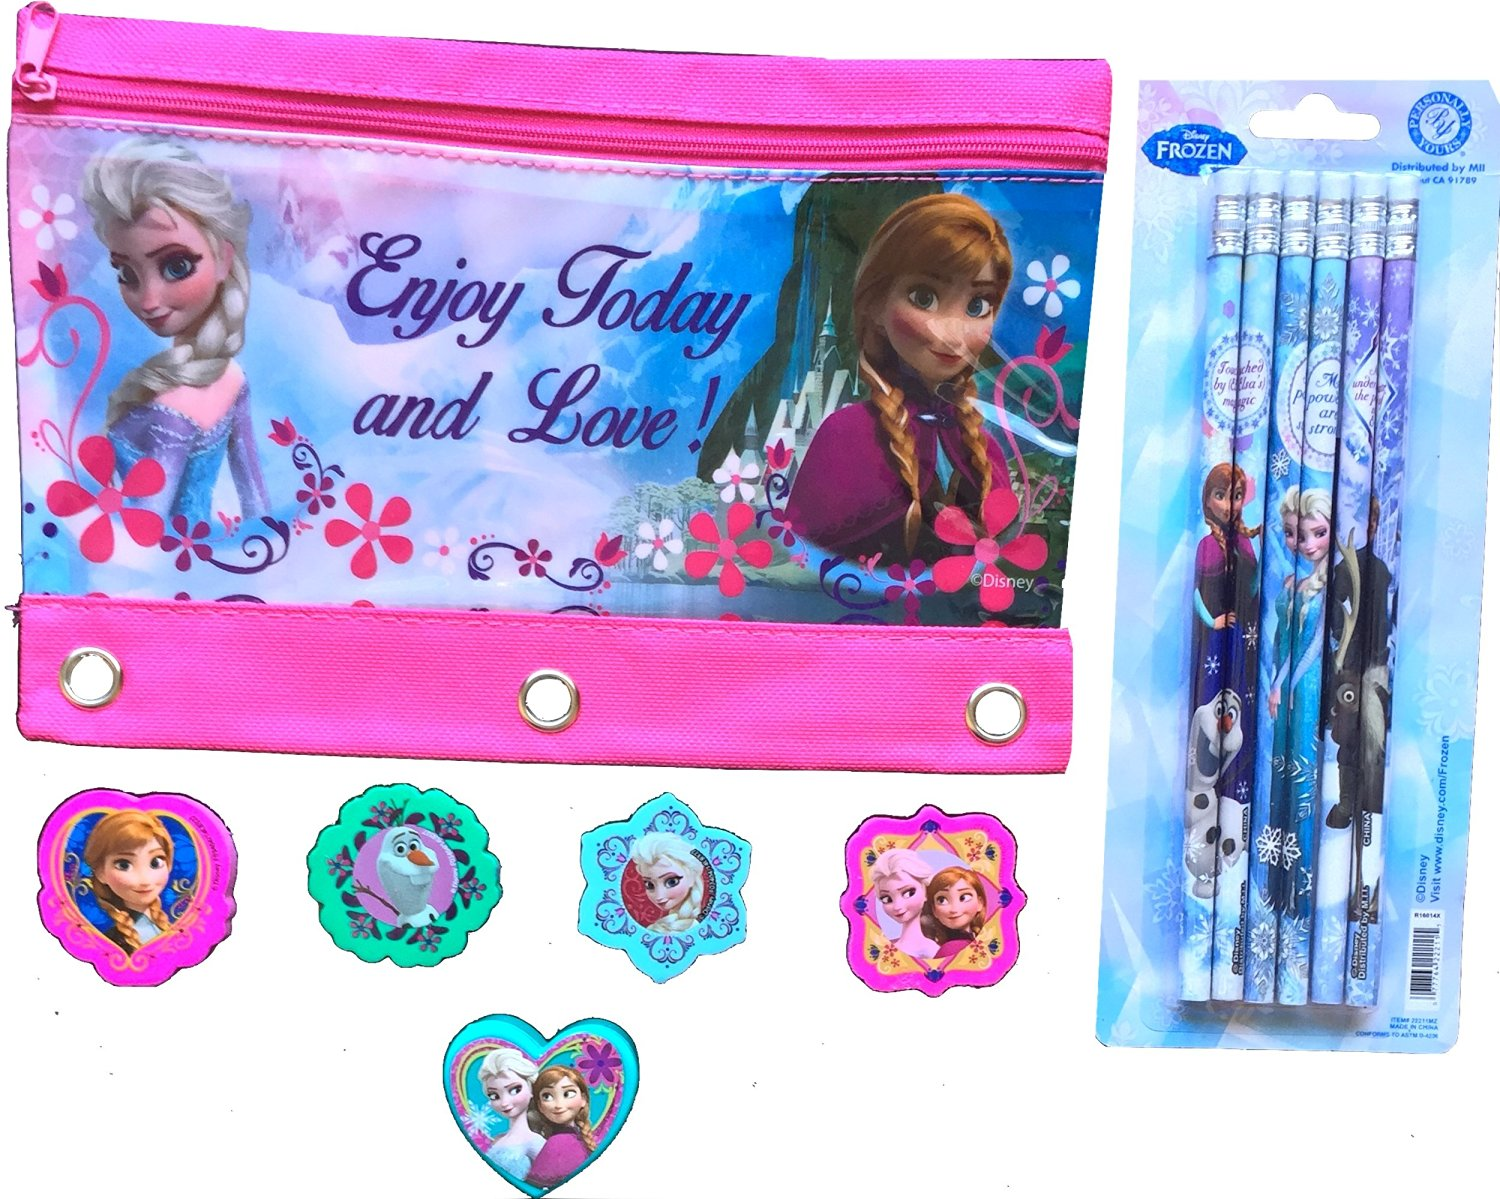 Frozen Exclusive Elsa /& Anna Blue Backpack 16 and Tiara Crown with Wand Silver with Blue Elsa and Anna Heart JewelSet